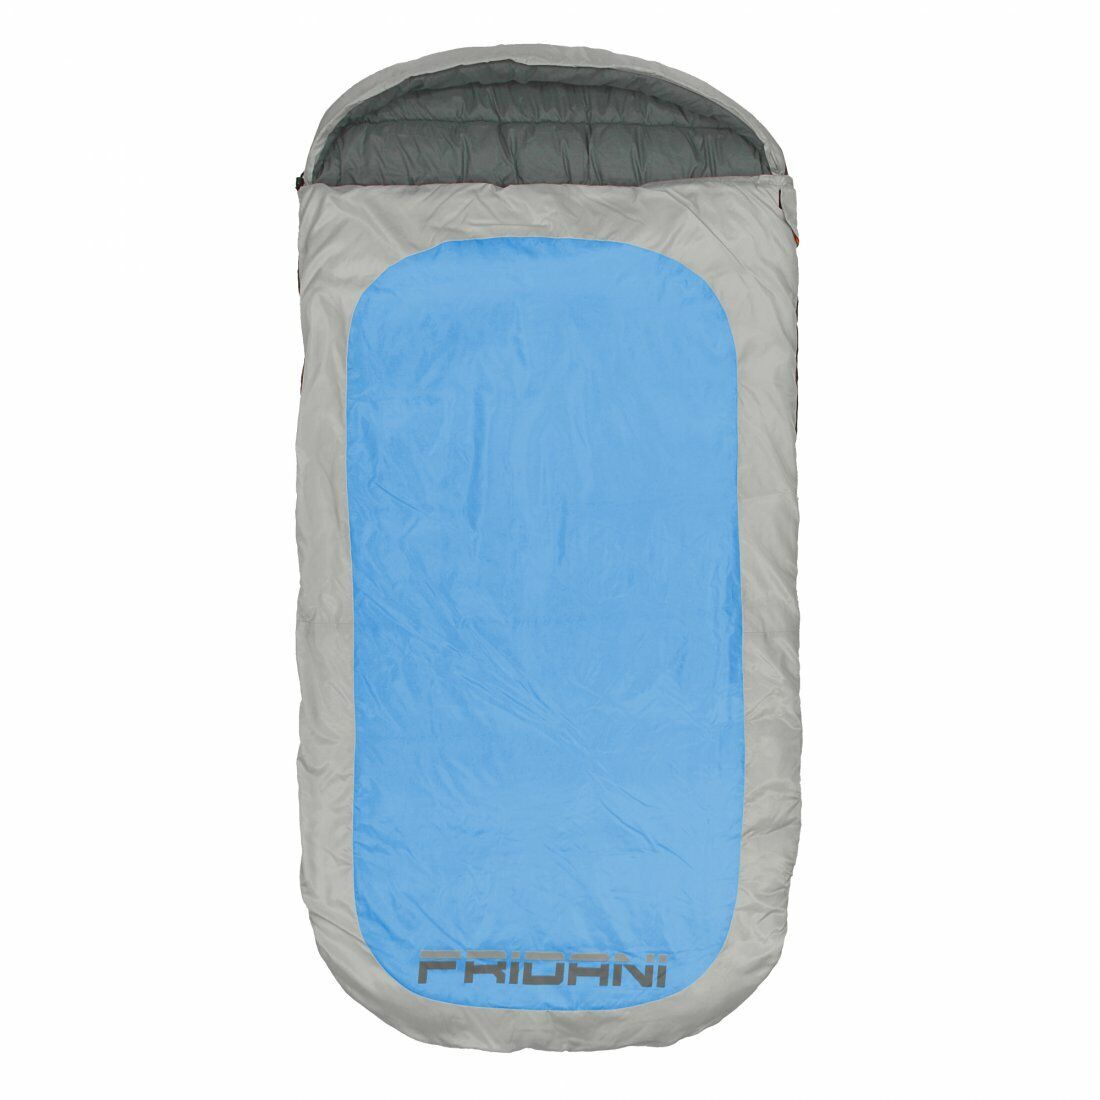 Blanket sleeping bag PB 220x110 XXL bluee -18°C water-repellent washable